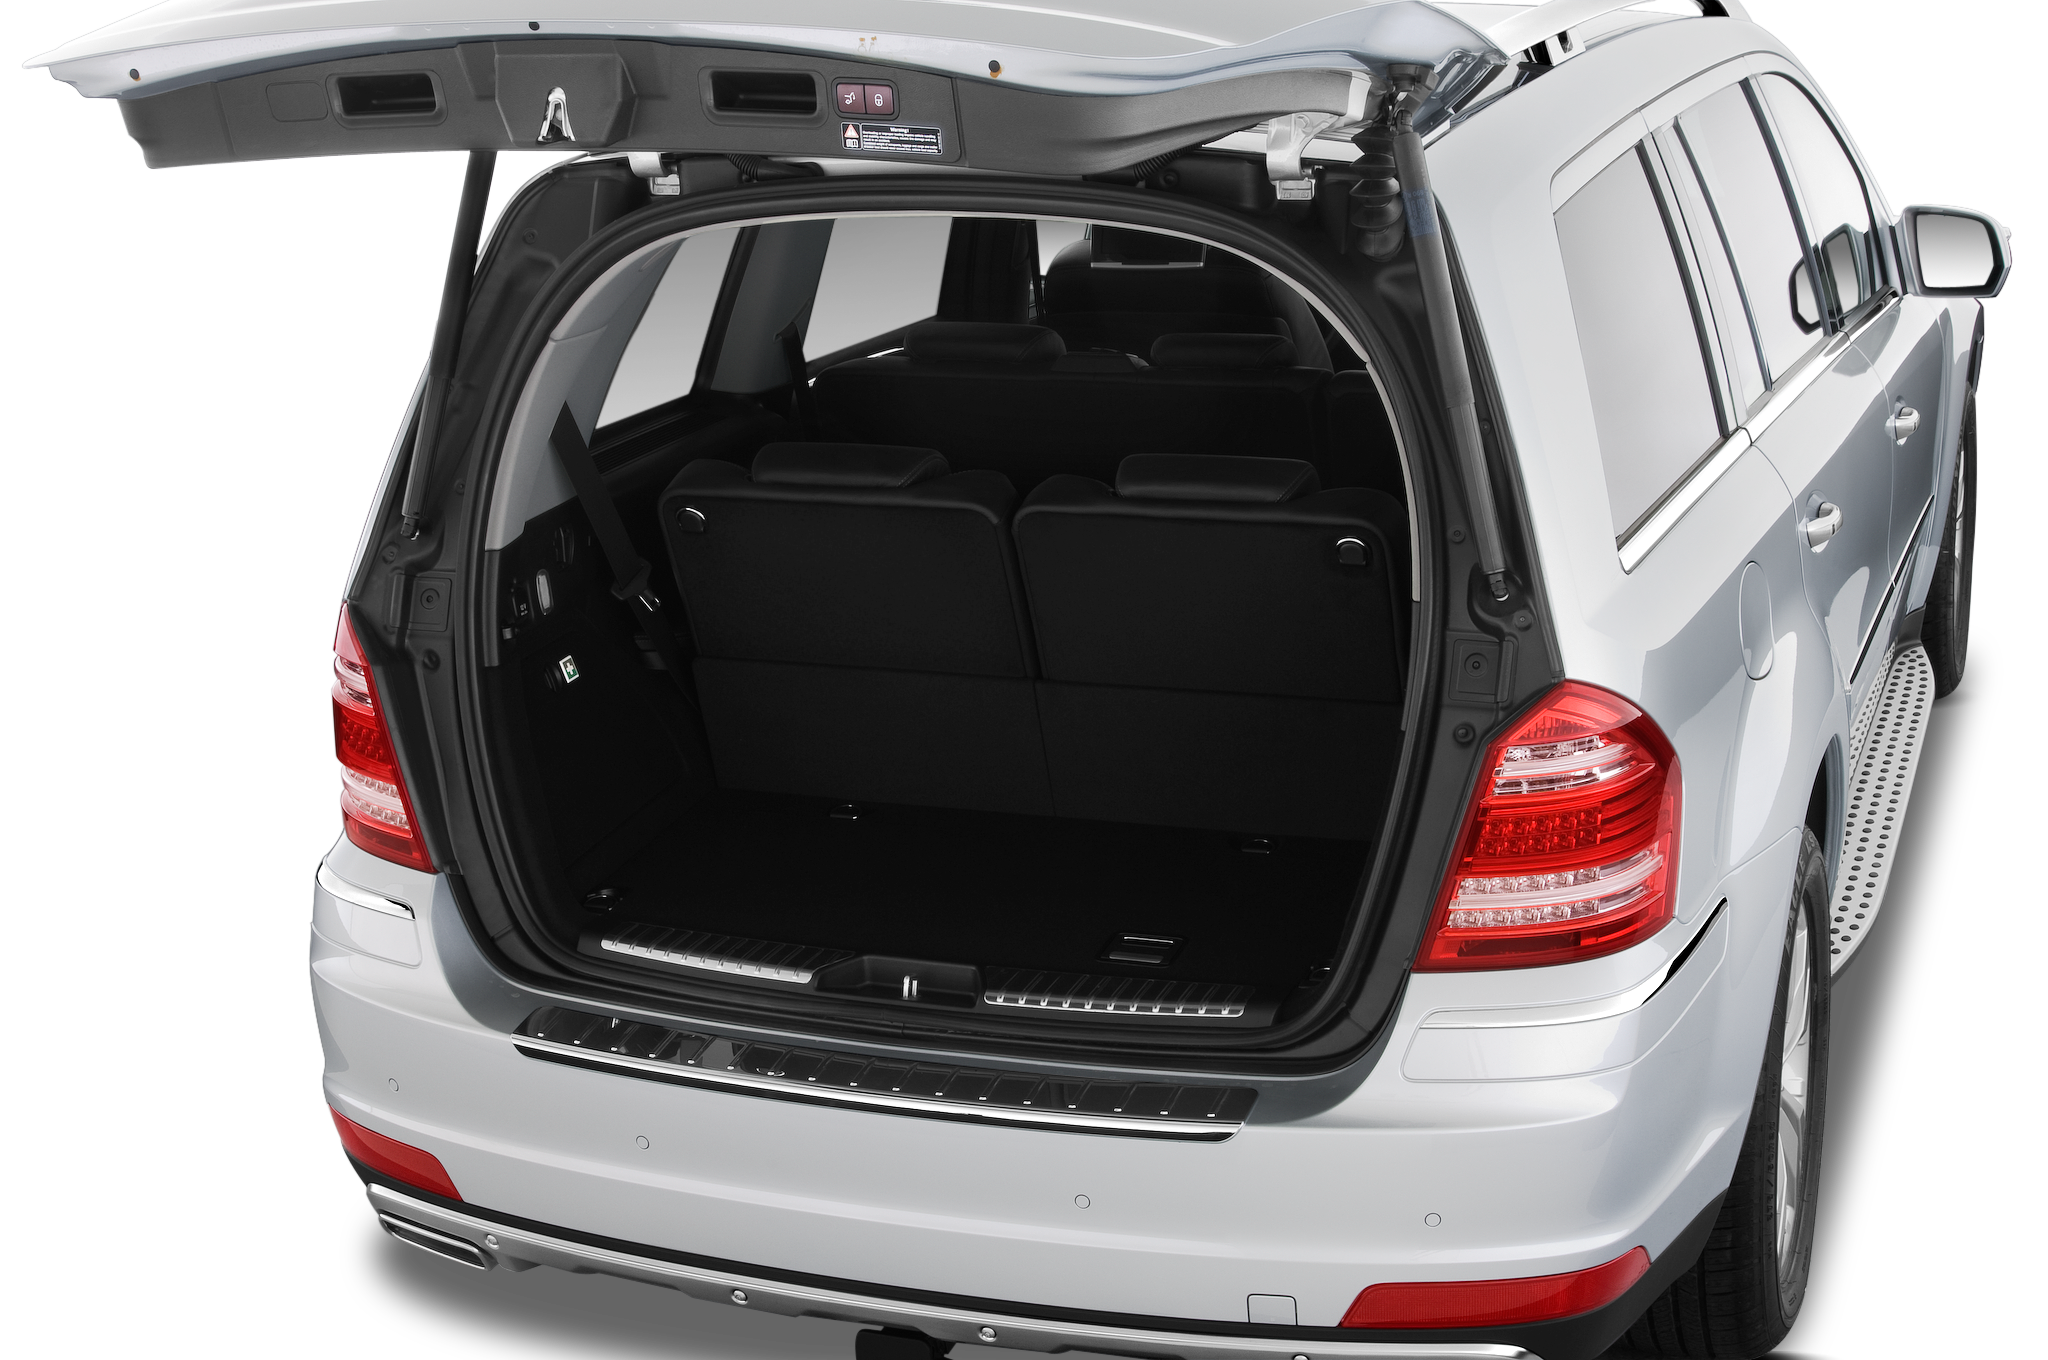 2012 Mercedes Benz Gl550 4matic Editors Notebook